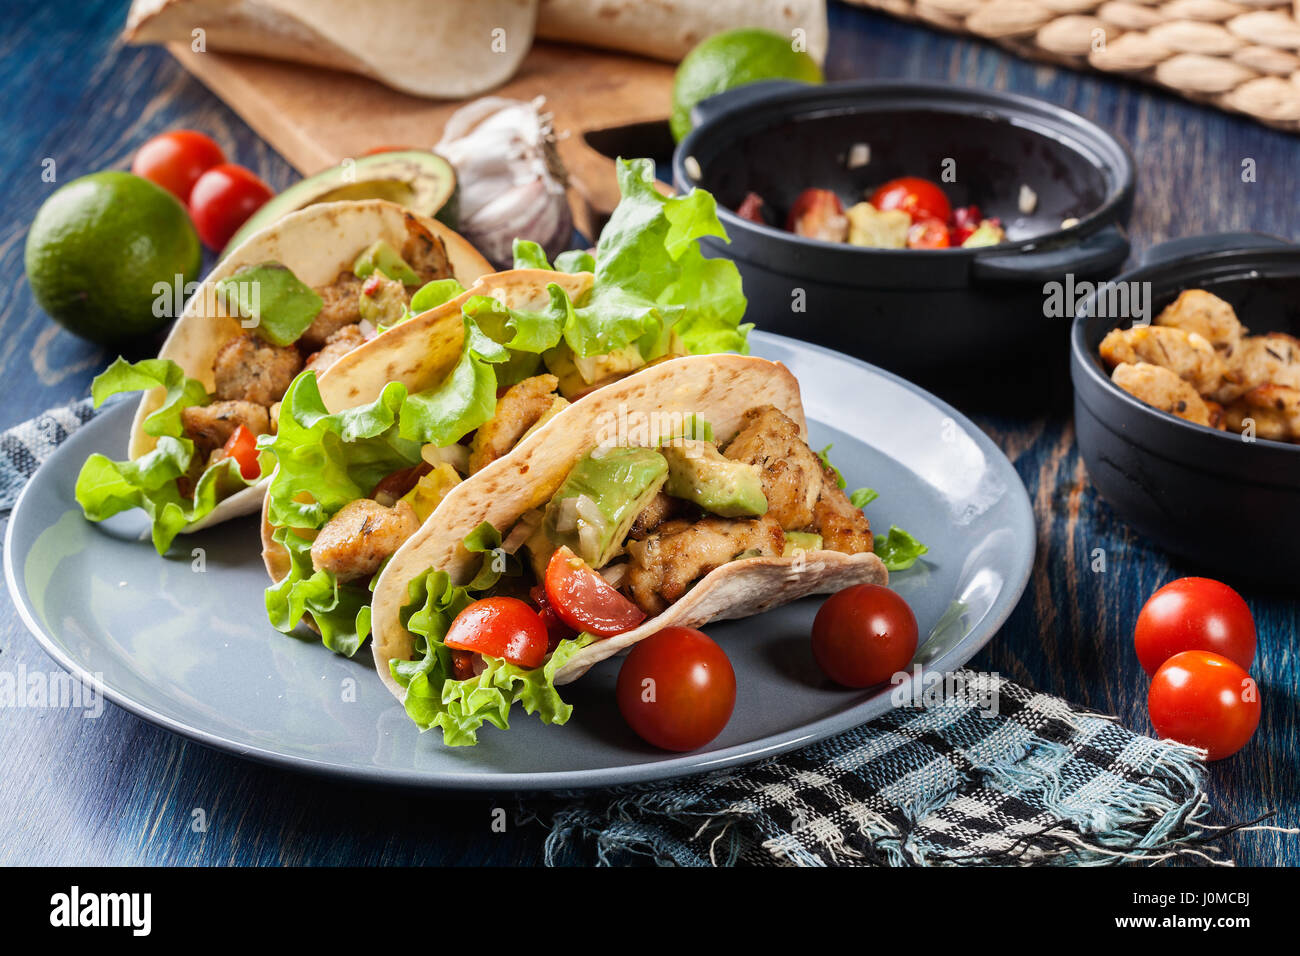 Authentic mexican tacos with chicken and salsa with avocado, tomatoes and chillies. Mexican cuisine. - Stock Image